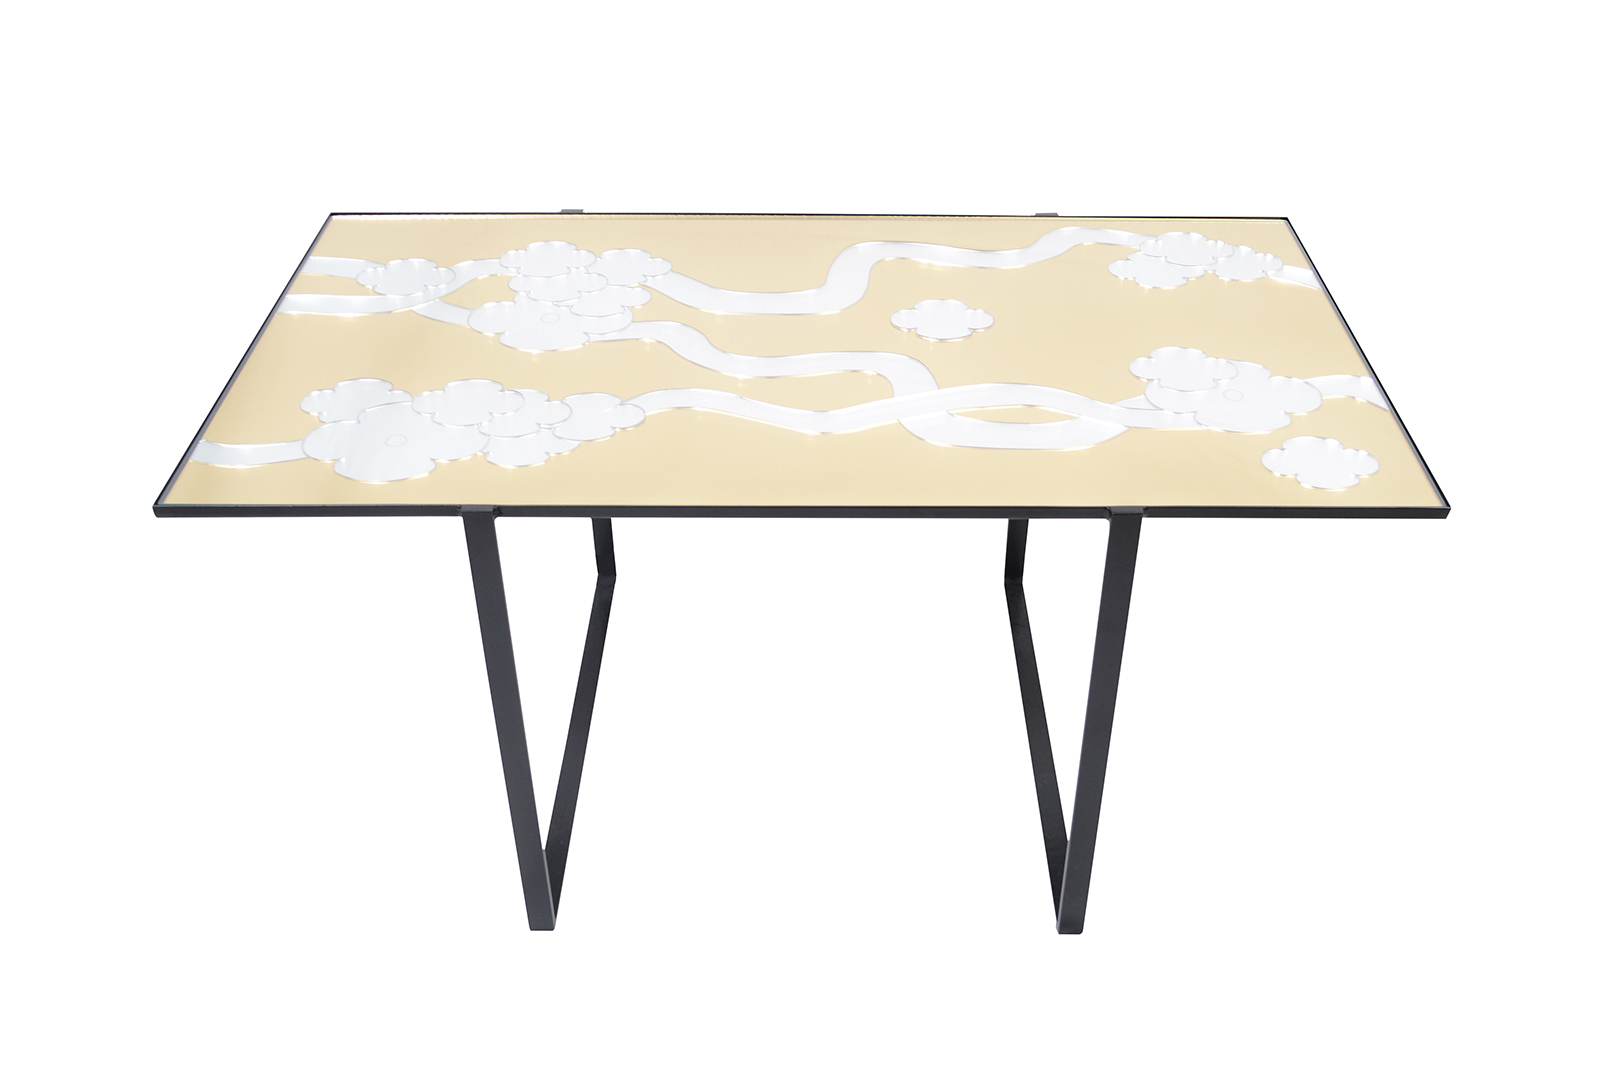 Table Reflection 5